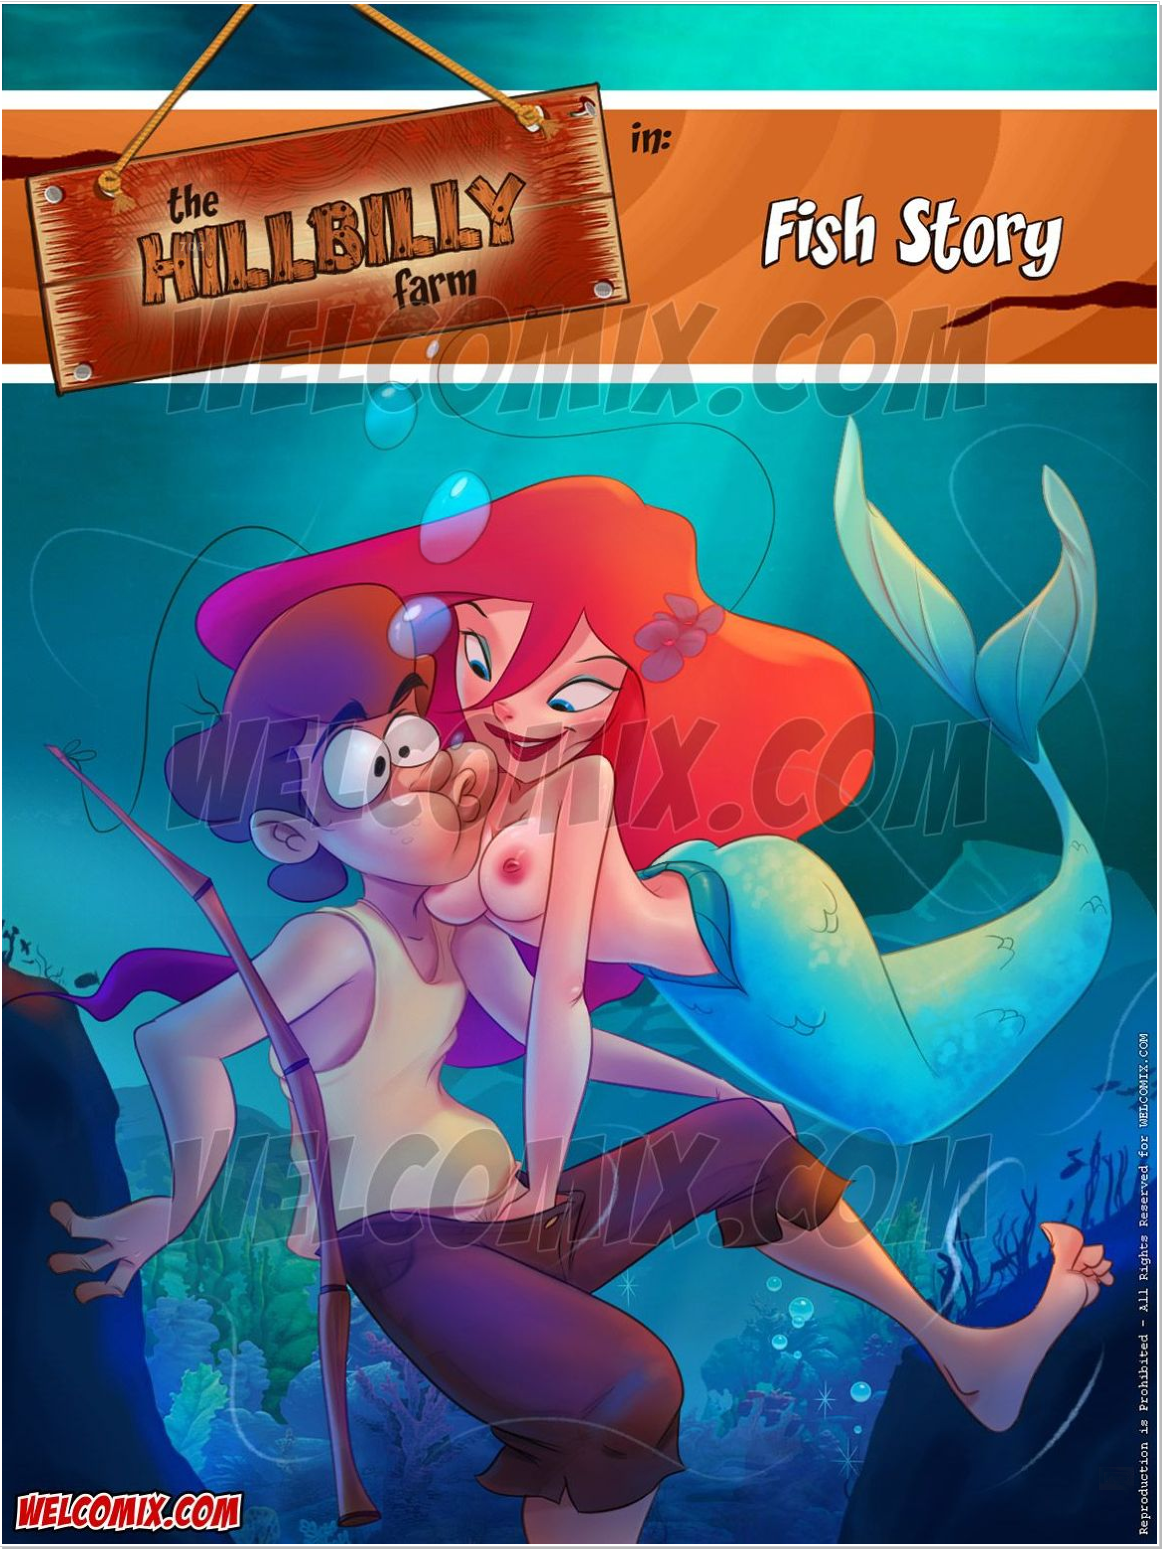 SureFap xxx porno The Little Mermaid - [WelComix] - The Hillbilly Farm #17 Fish Story